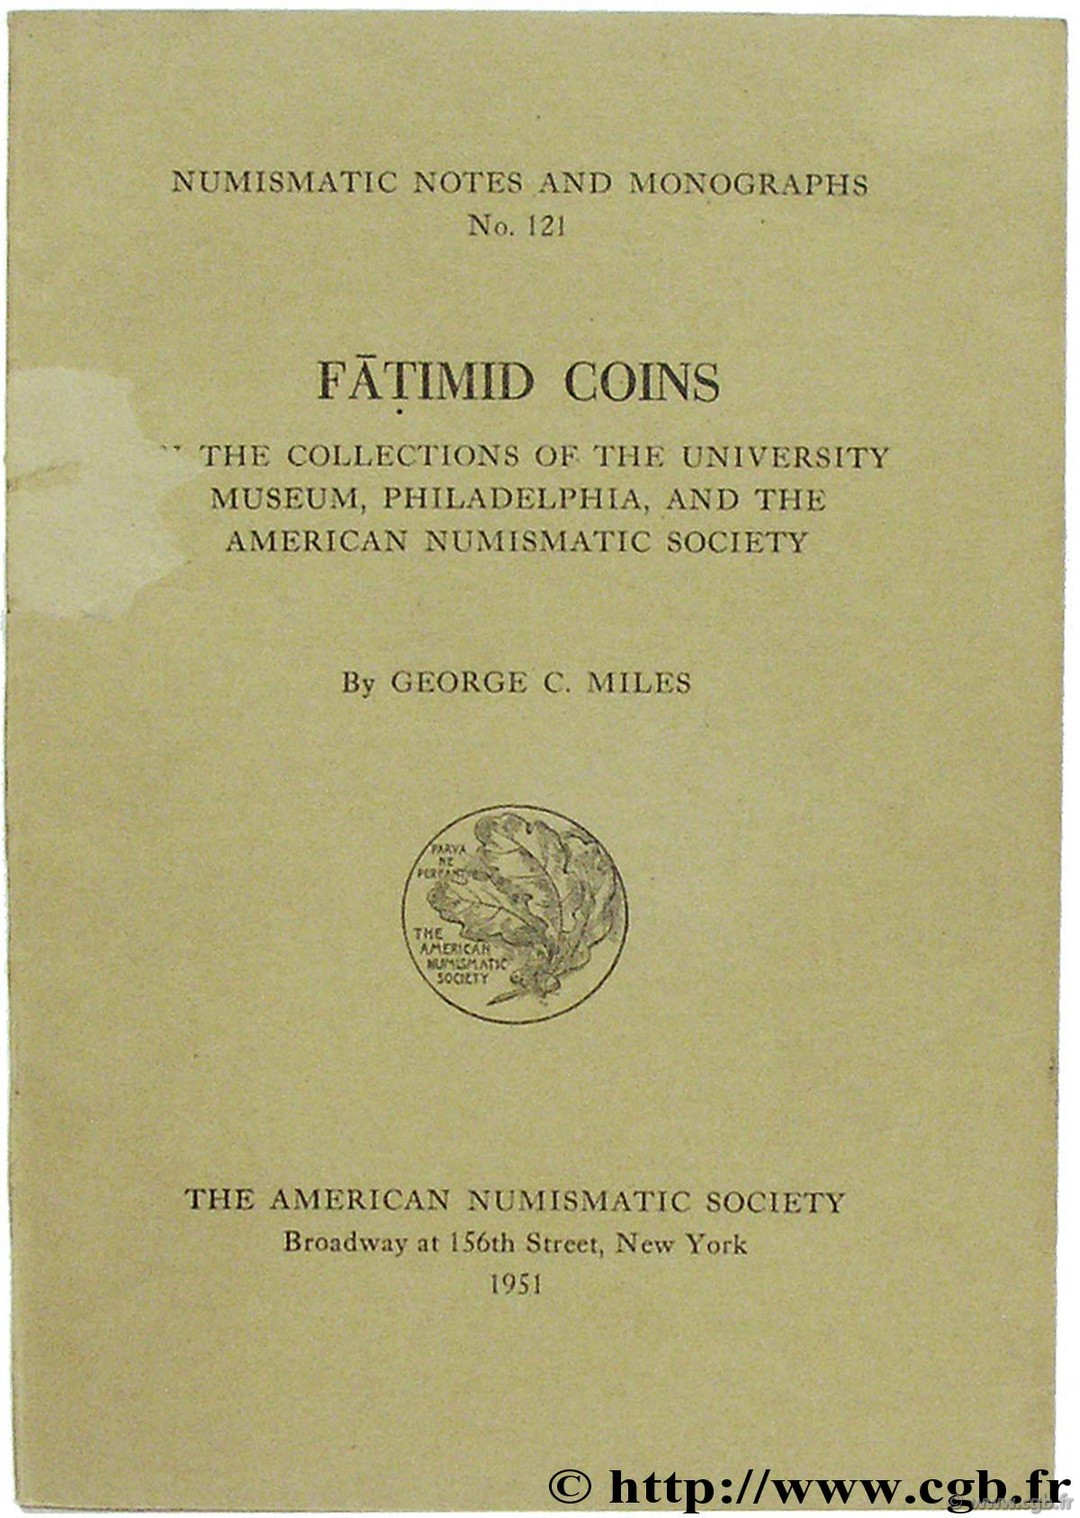 Fatimid Coins in the Collections of the University Museum, Philadelphia, and the American Numismatic Society MILES G.-C.